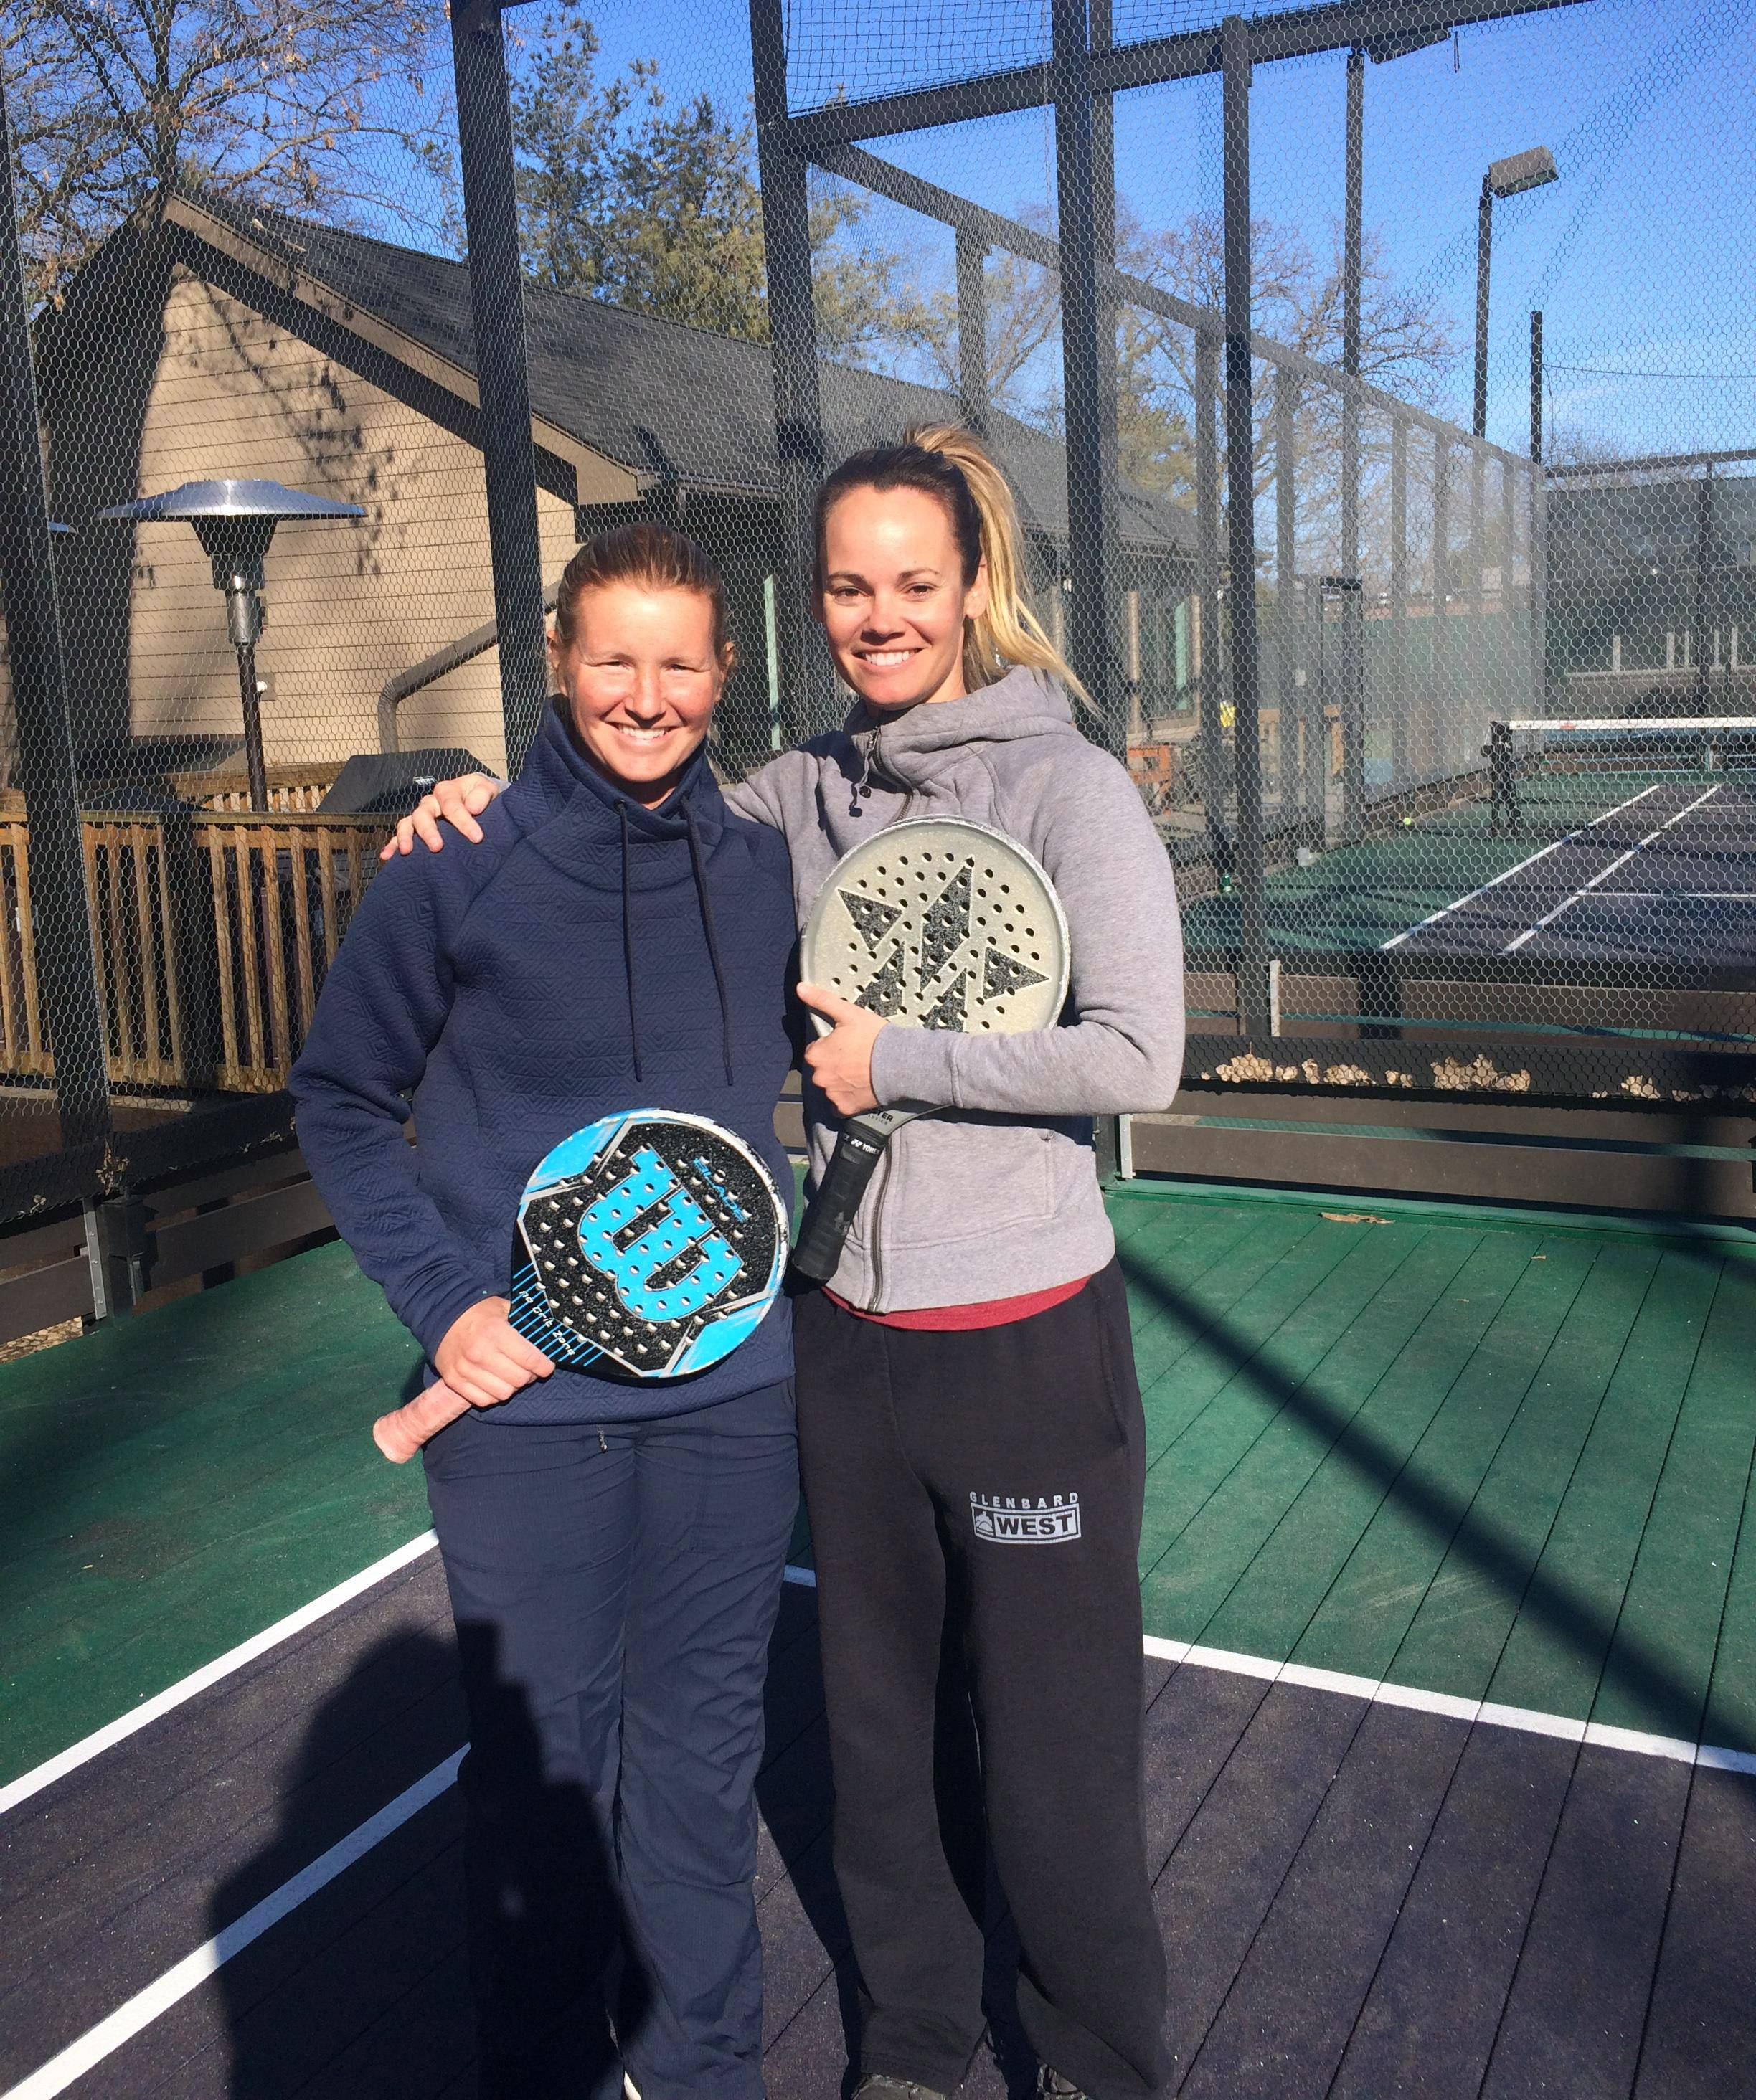 The suburban platform tennis team of Alison Morgan and Laura Berendt won the Hinsdale Challenge, the 2018 National Ranking and Viking President's Cup Qualifier.